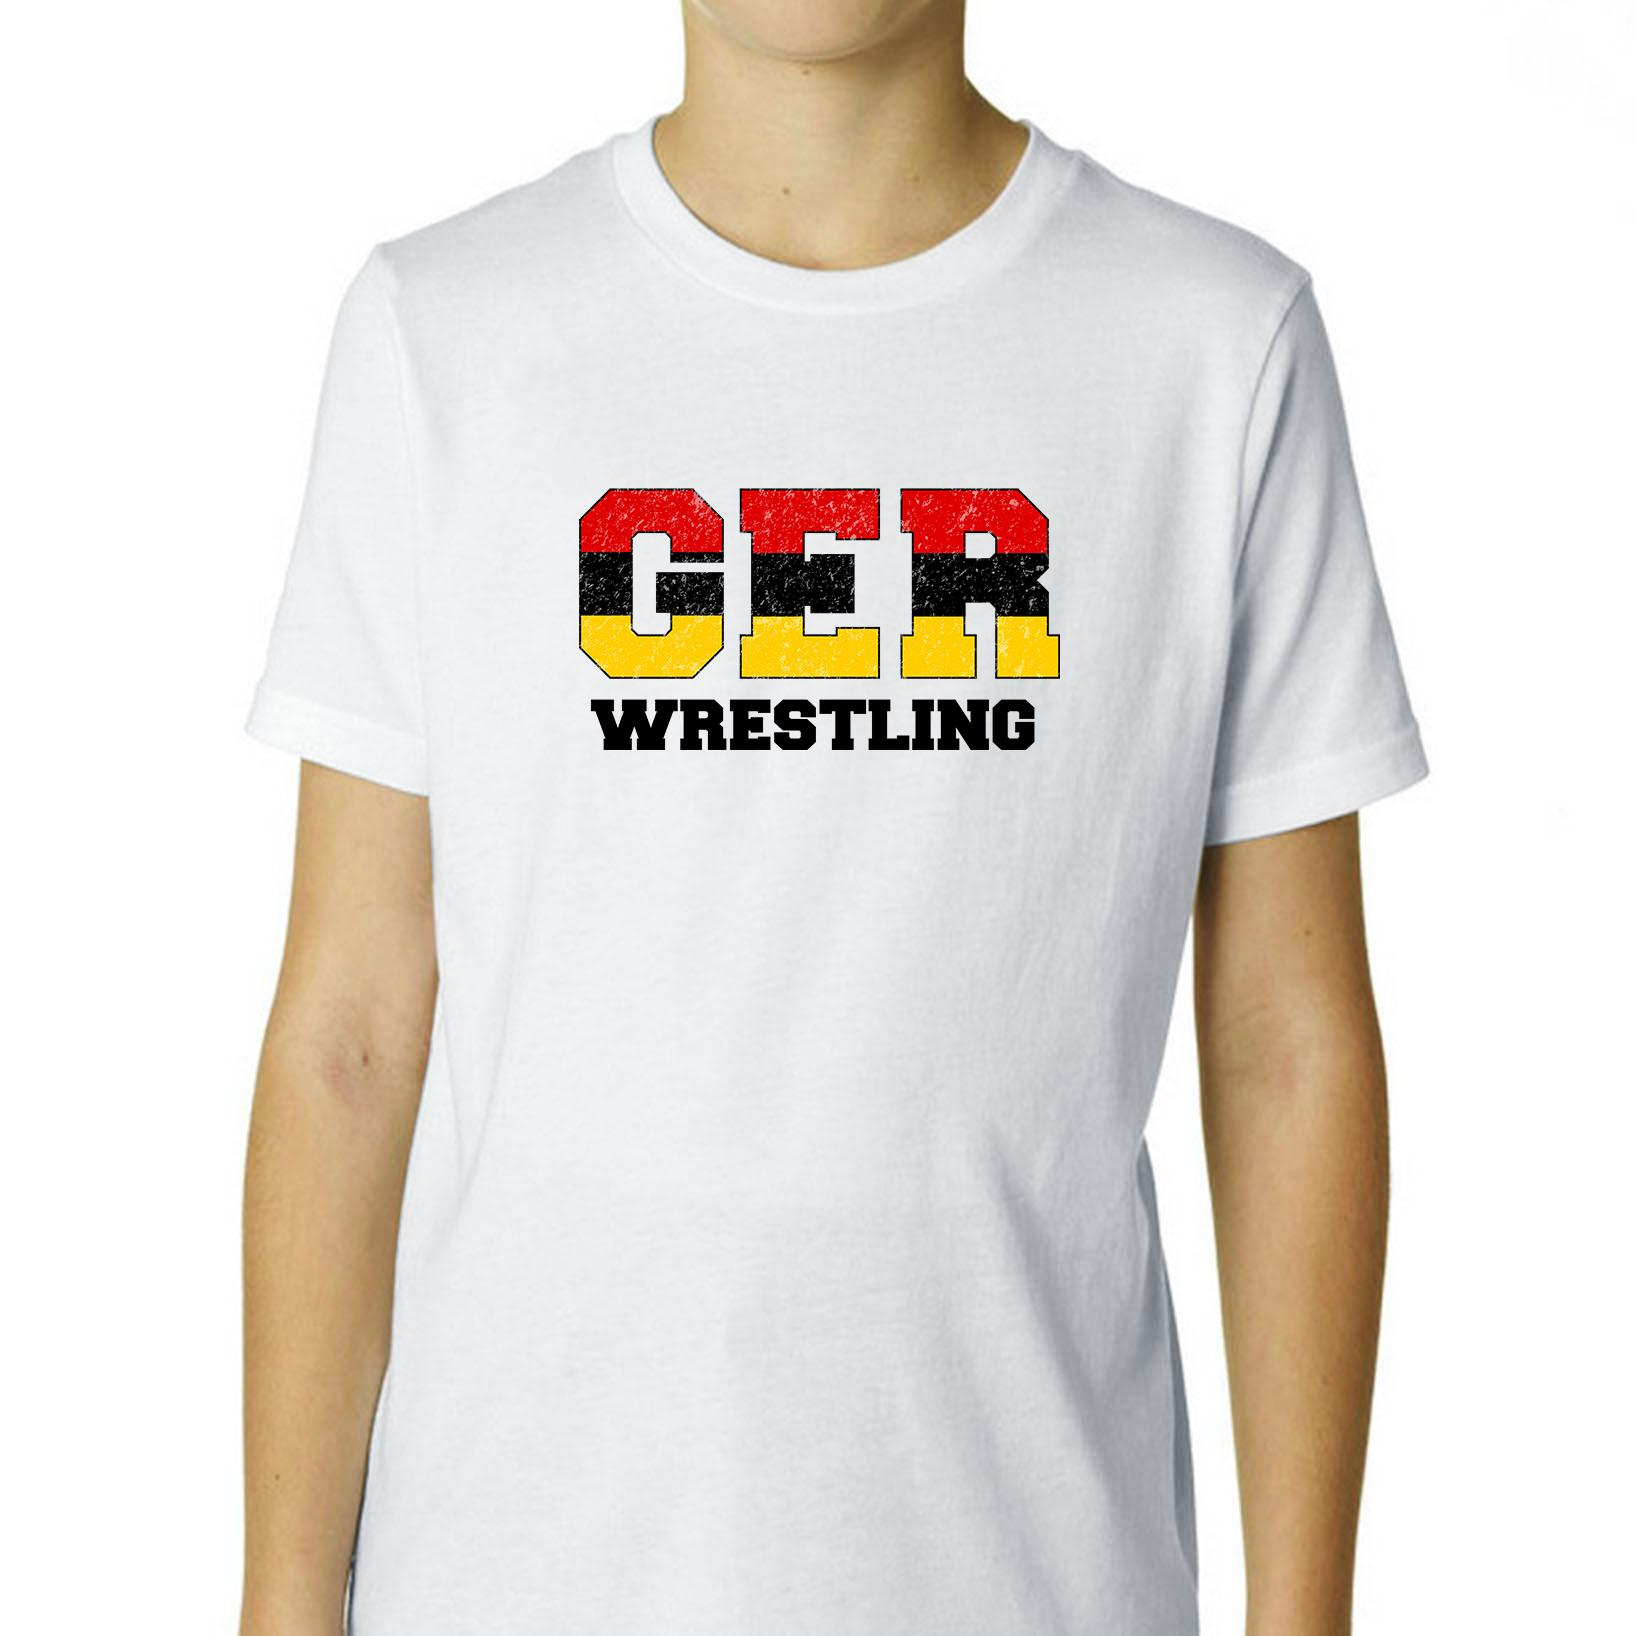 Germany Wrestling Olympic Games Rio Flag Boy's Cotton Youth T-Shirt by Hollywood Thread